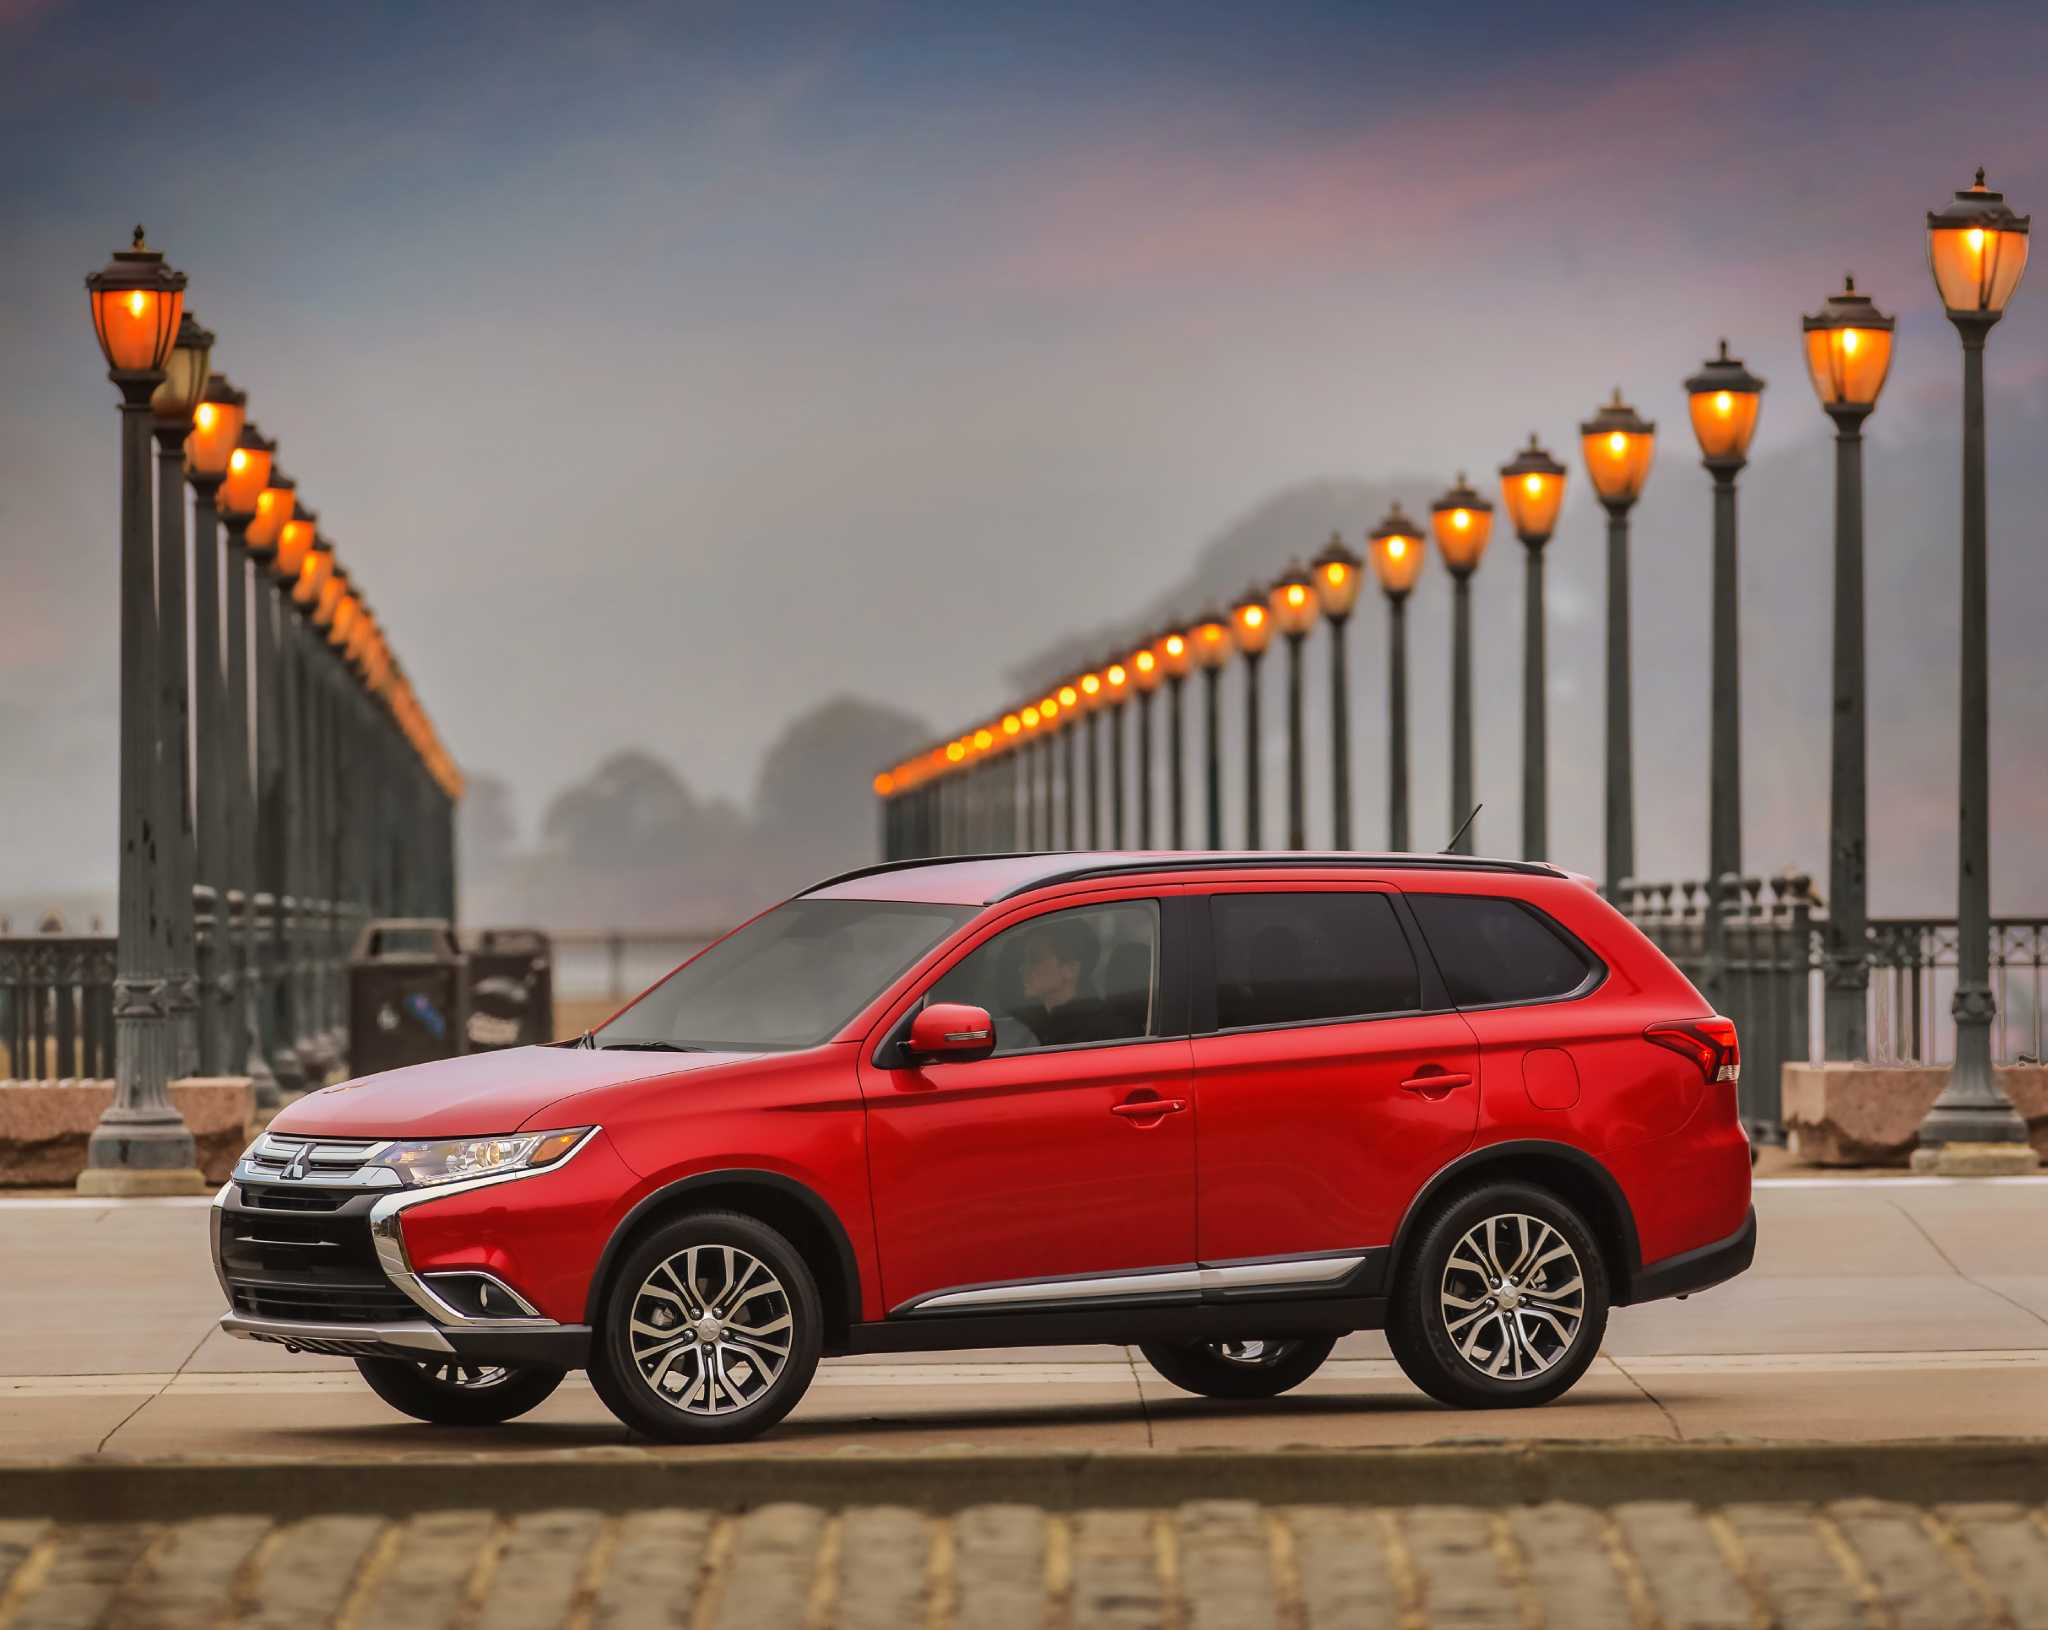 2016 Mitsubishi Outlander enhanced outside and within